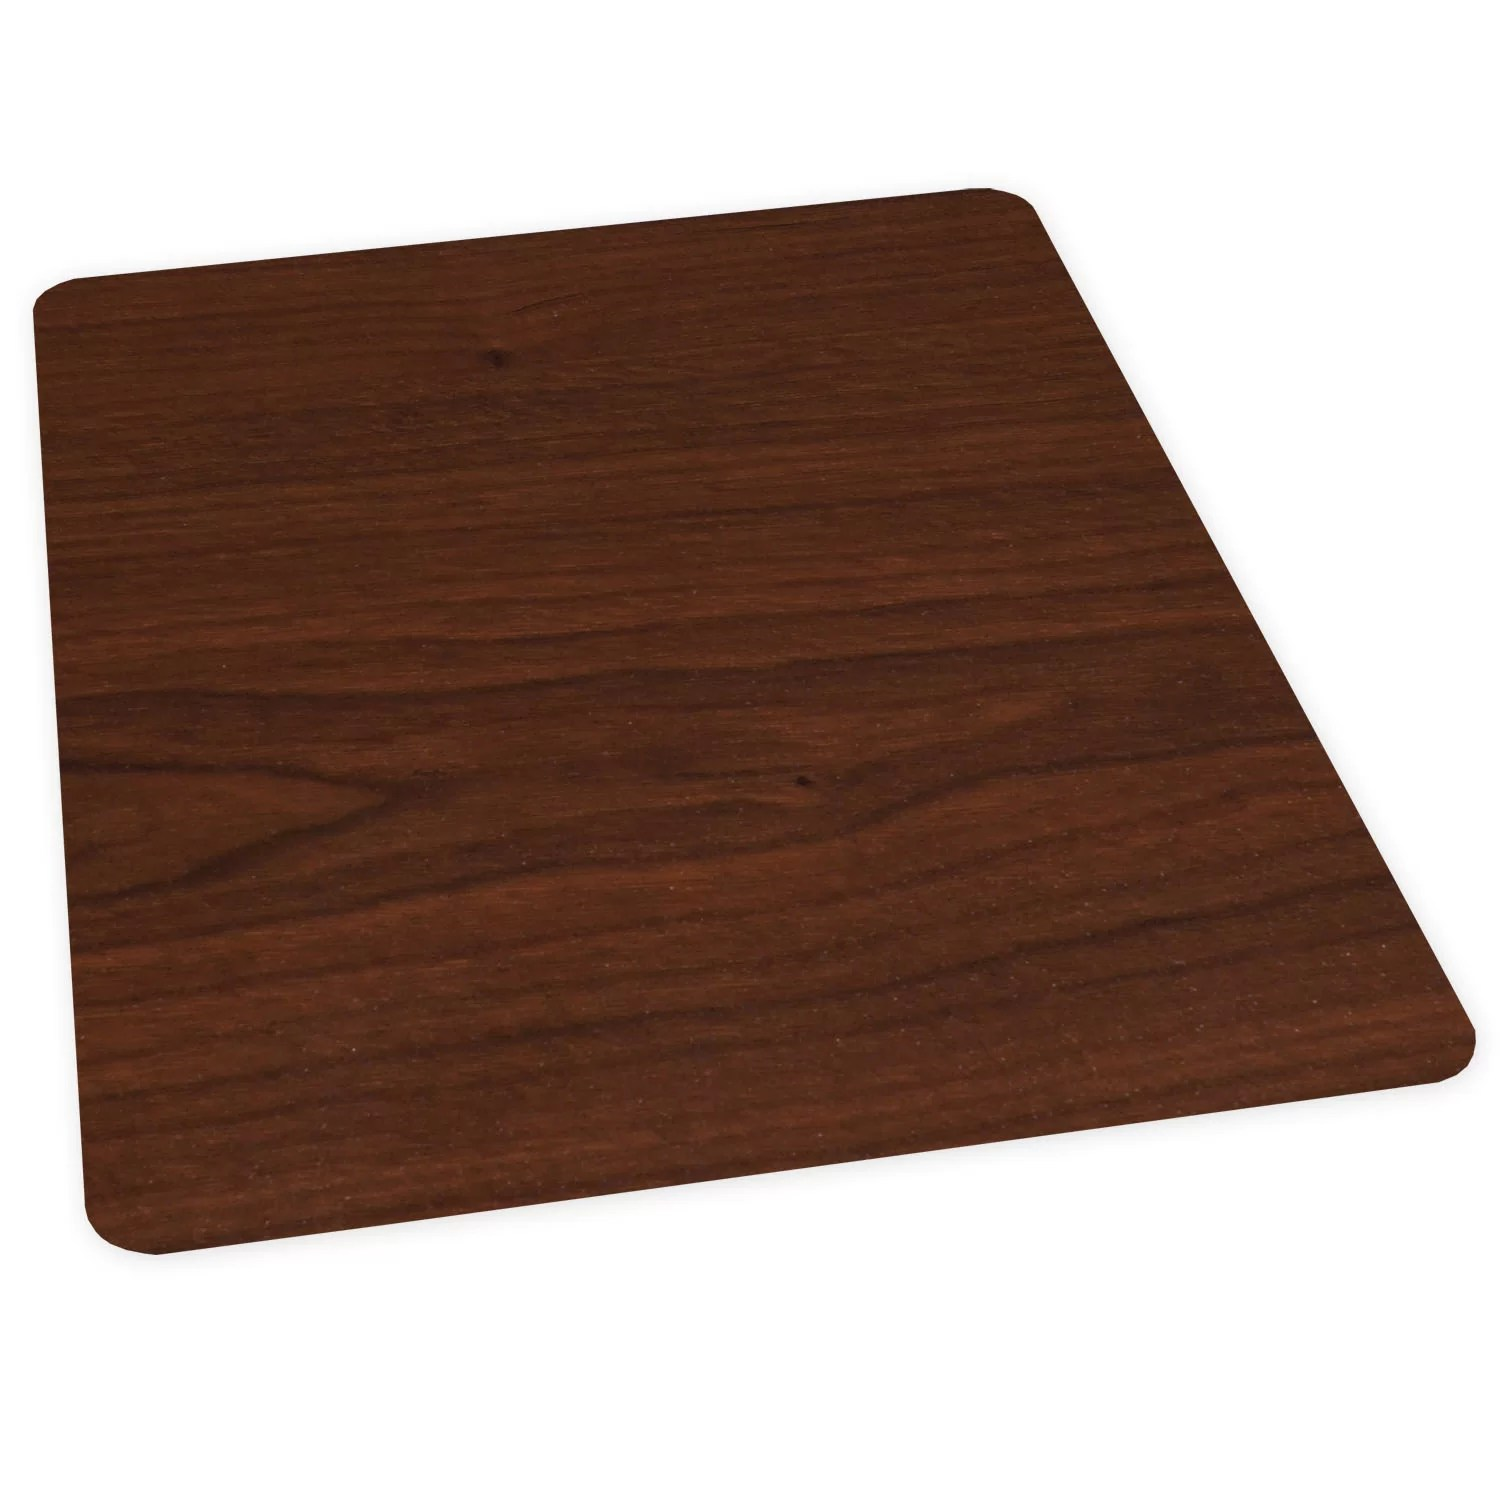 carpet chair mats diy wooden rocking plans es robbins corporation wood veneer style hard floor